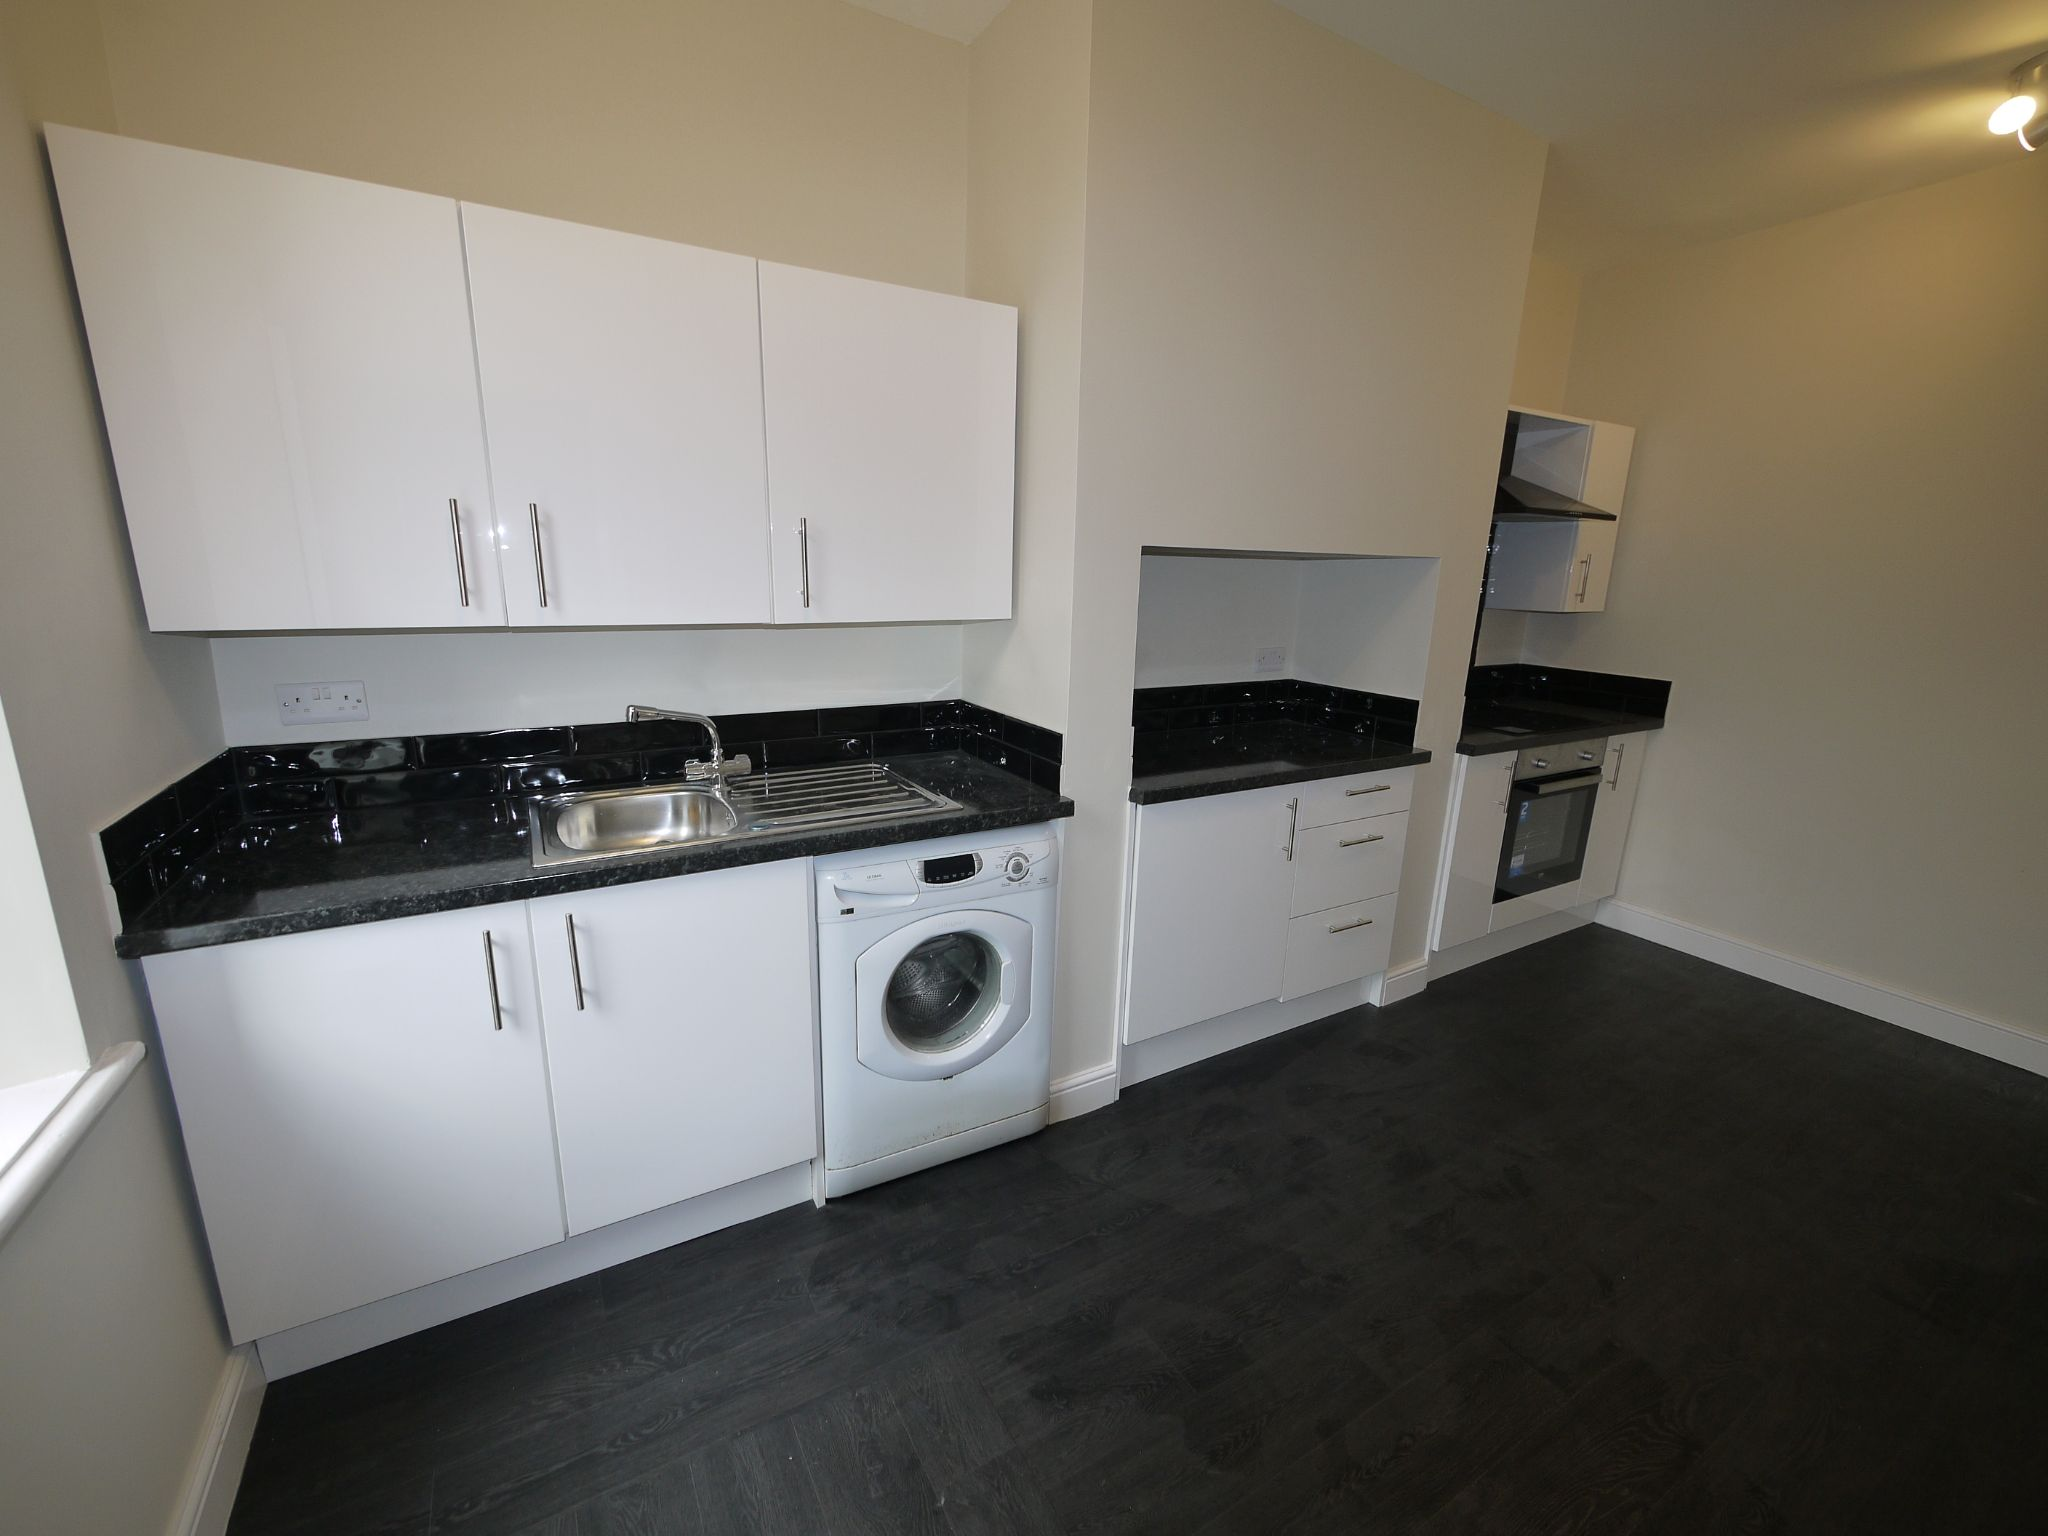 2 bedroom end terraced house SSTC in Brighouse - Kitchen.